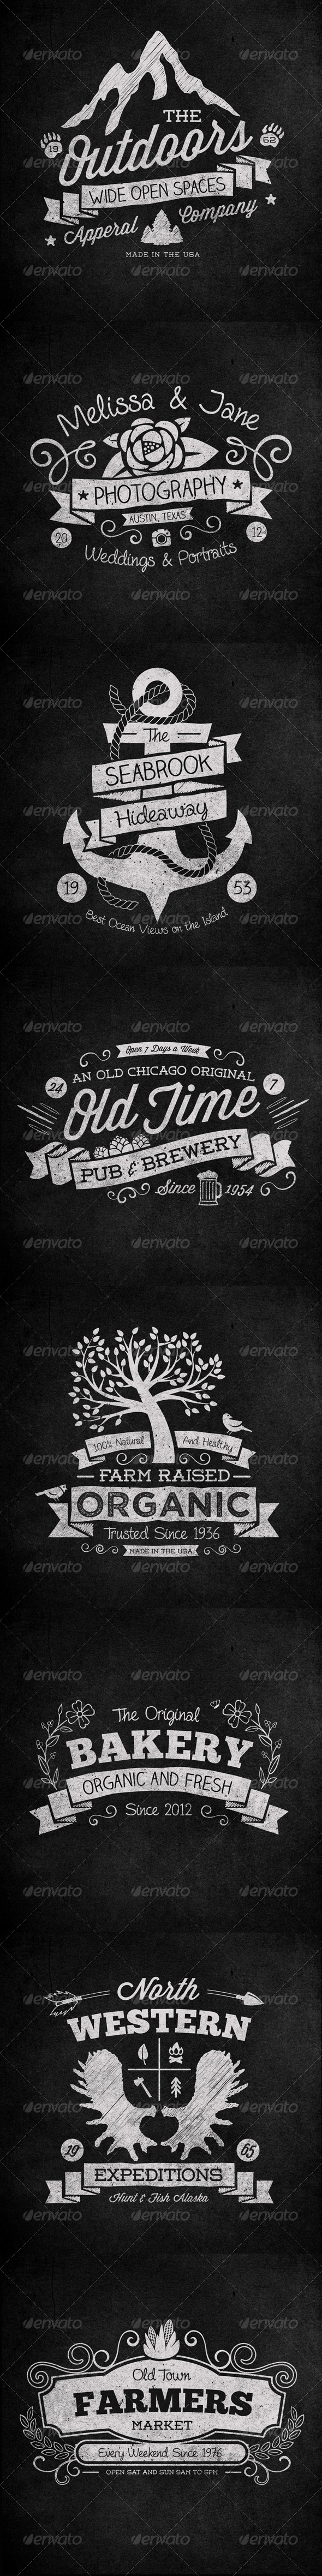 GraphicRiver Hand Drawn Vintage Labels Vol 1 PSD 7986880